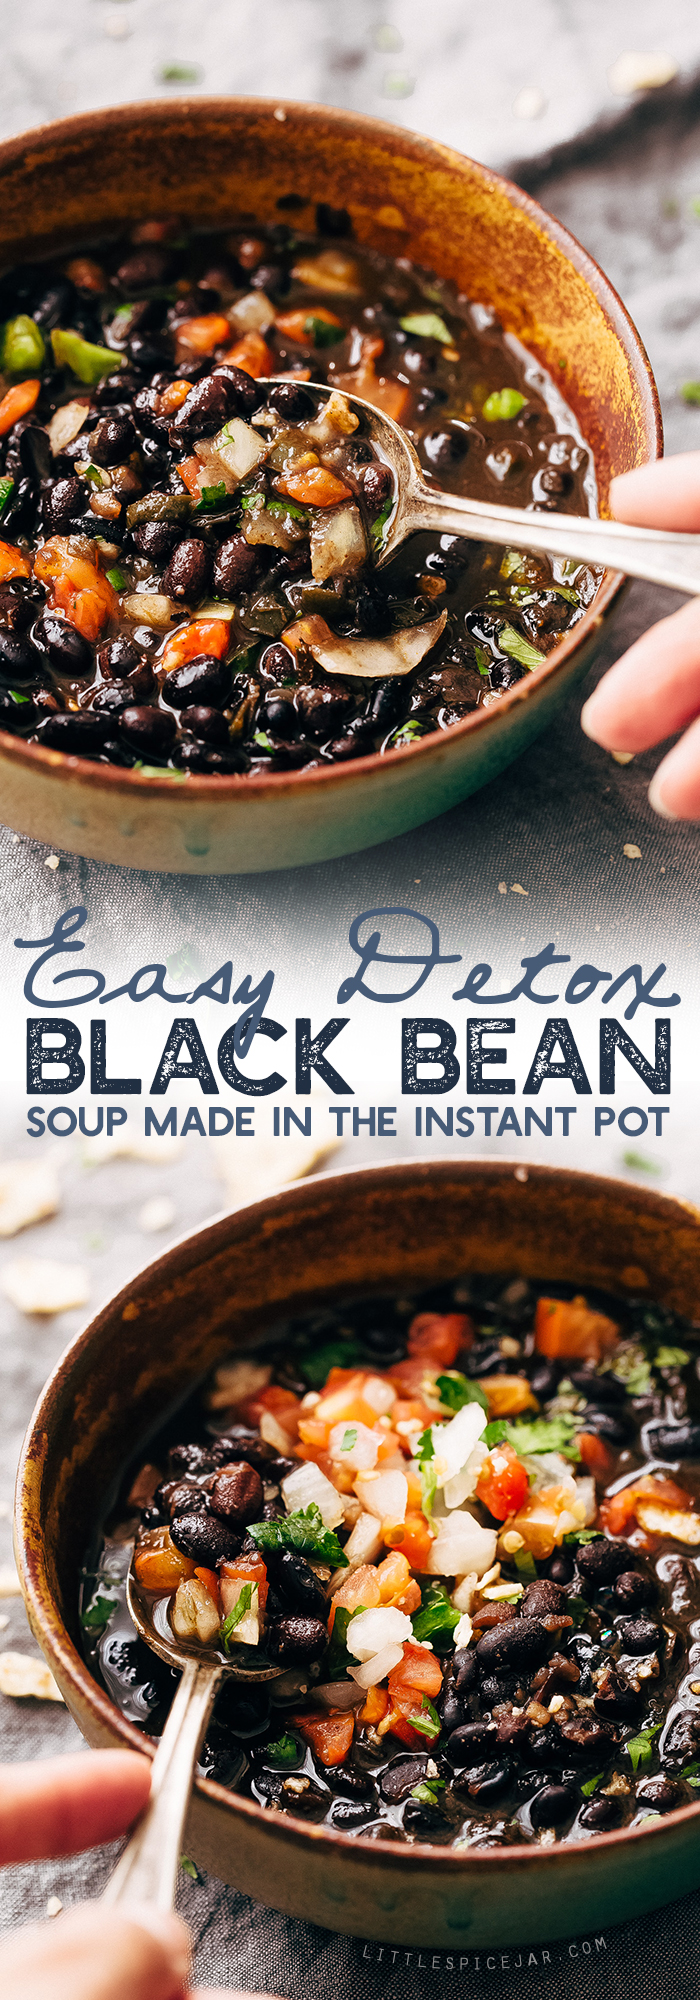 Instant Pot Easy Detoxing Black Bean Soup - a super simple homemade soup made in the pressure cooker! Great for bagged lunches because it's better as it sits! #spicyblackbeansoup #blackbeansoup #detoxsoup #detoxingsoup   Littlespicejar.com